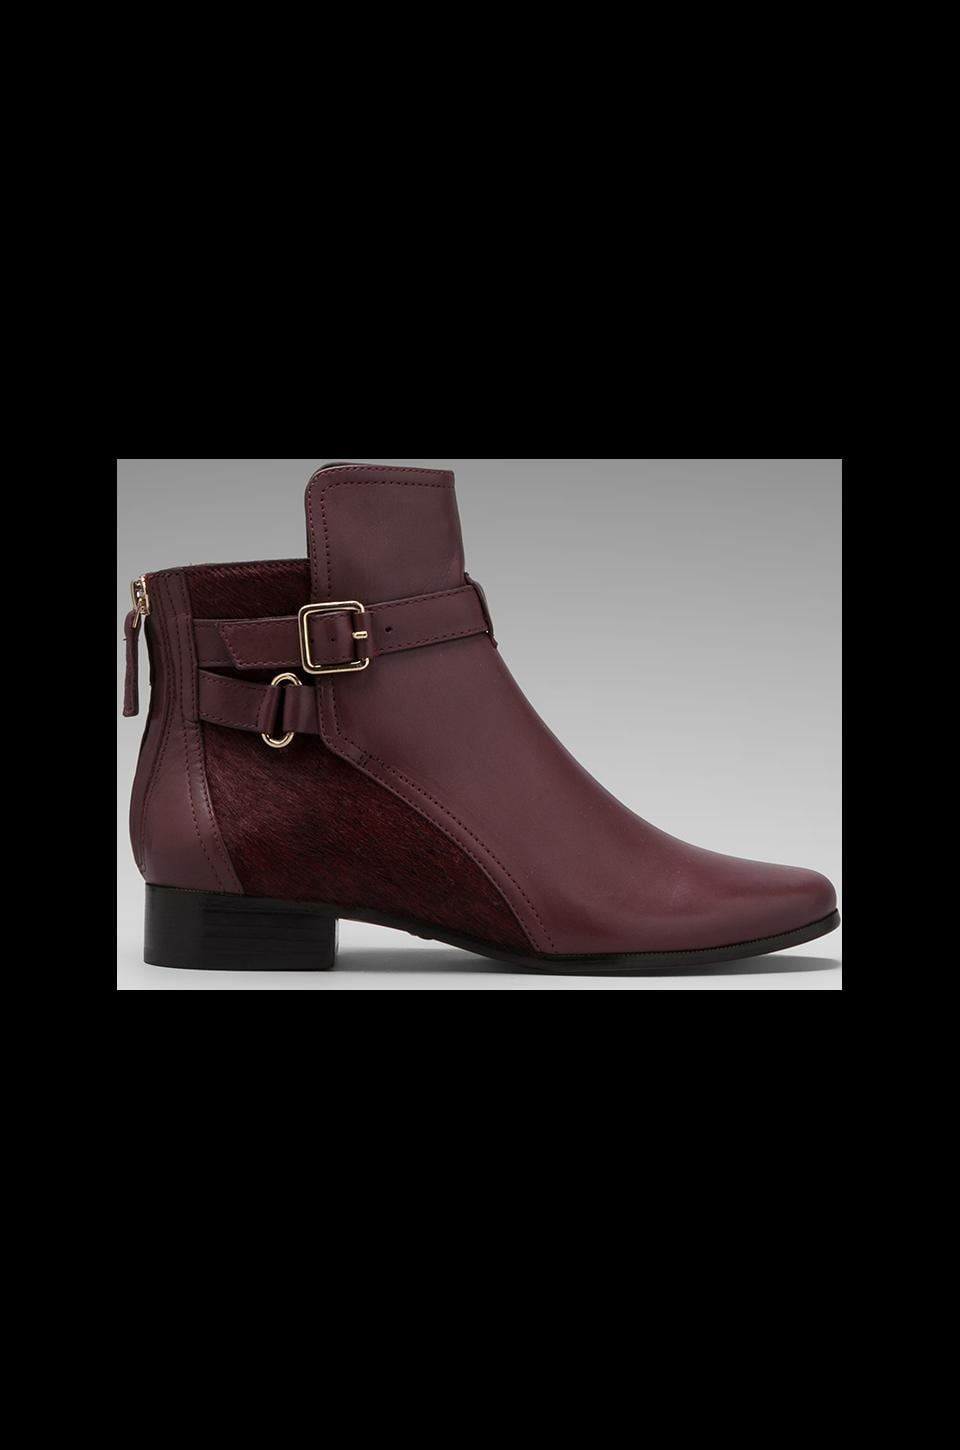 Diane von Furstenberg Keith Bootie with Calf Hair in Deep Cherry